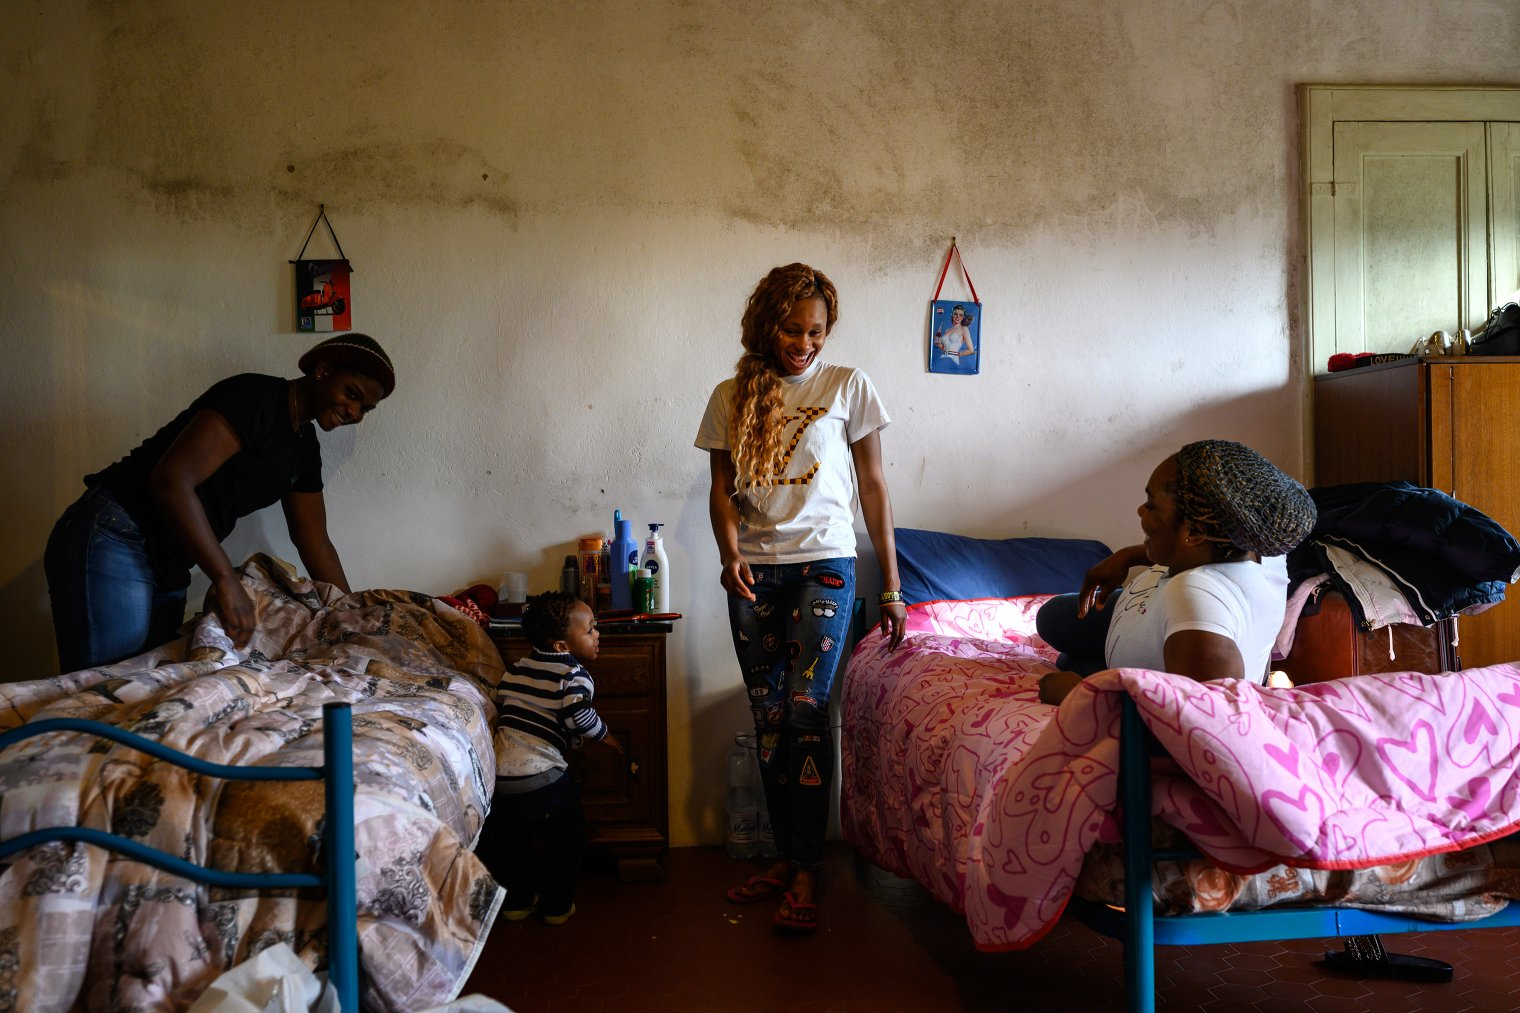 Gladys, far left, a Nigerian woman trafficked into prostitution, with other victims of trafficking in a women's shelter near Asti, Italy